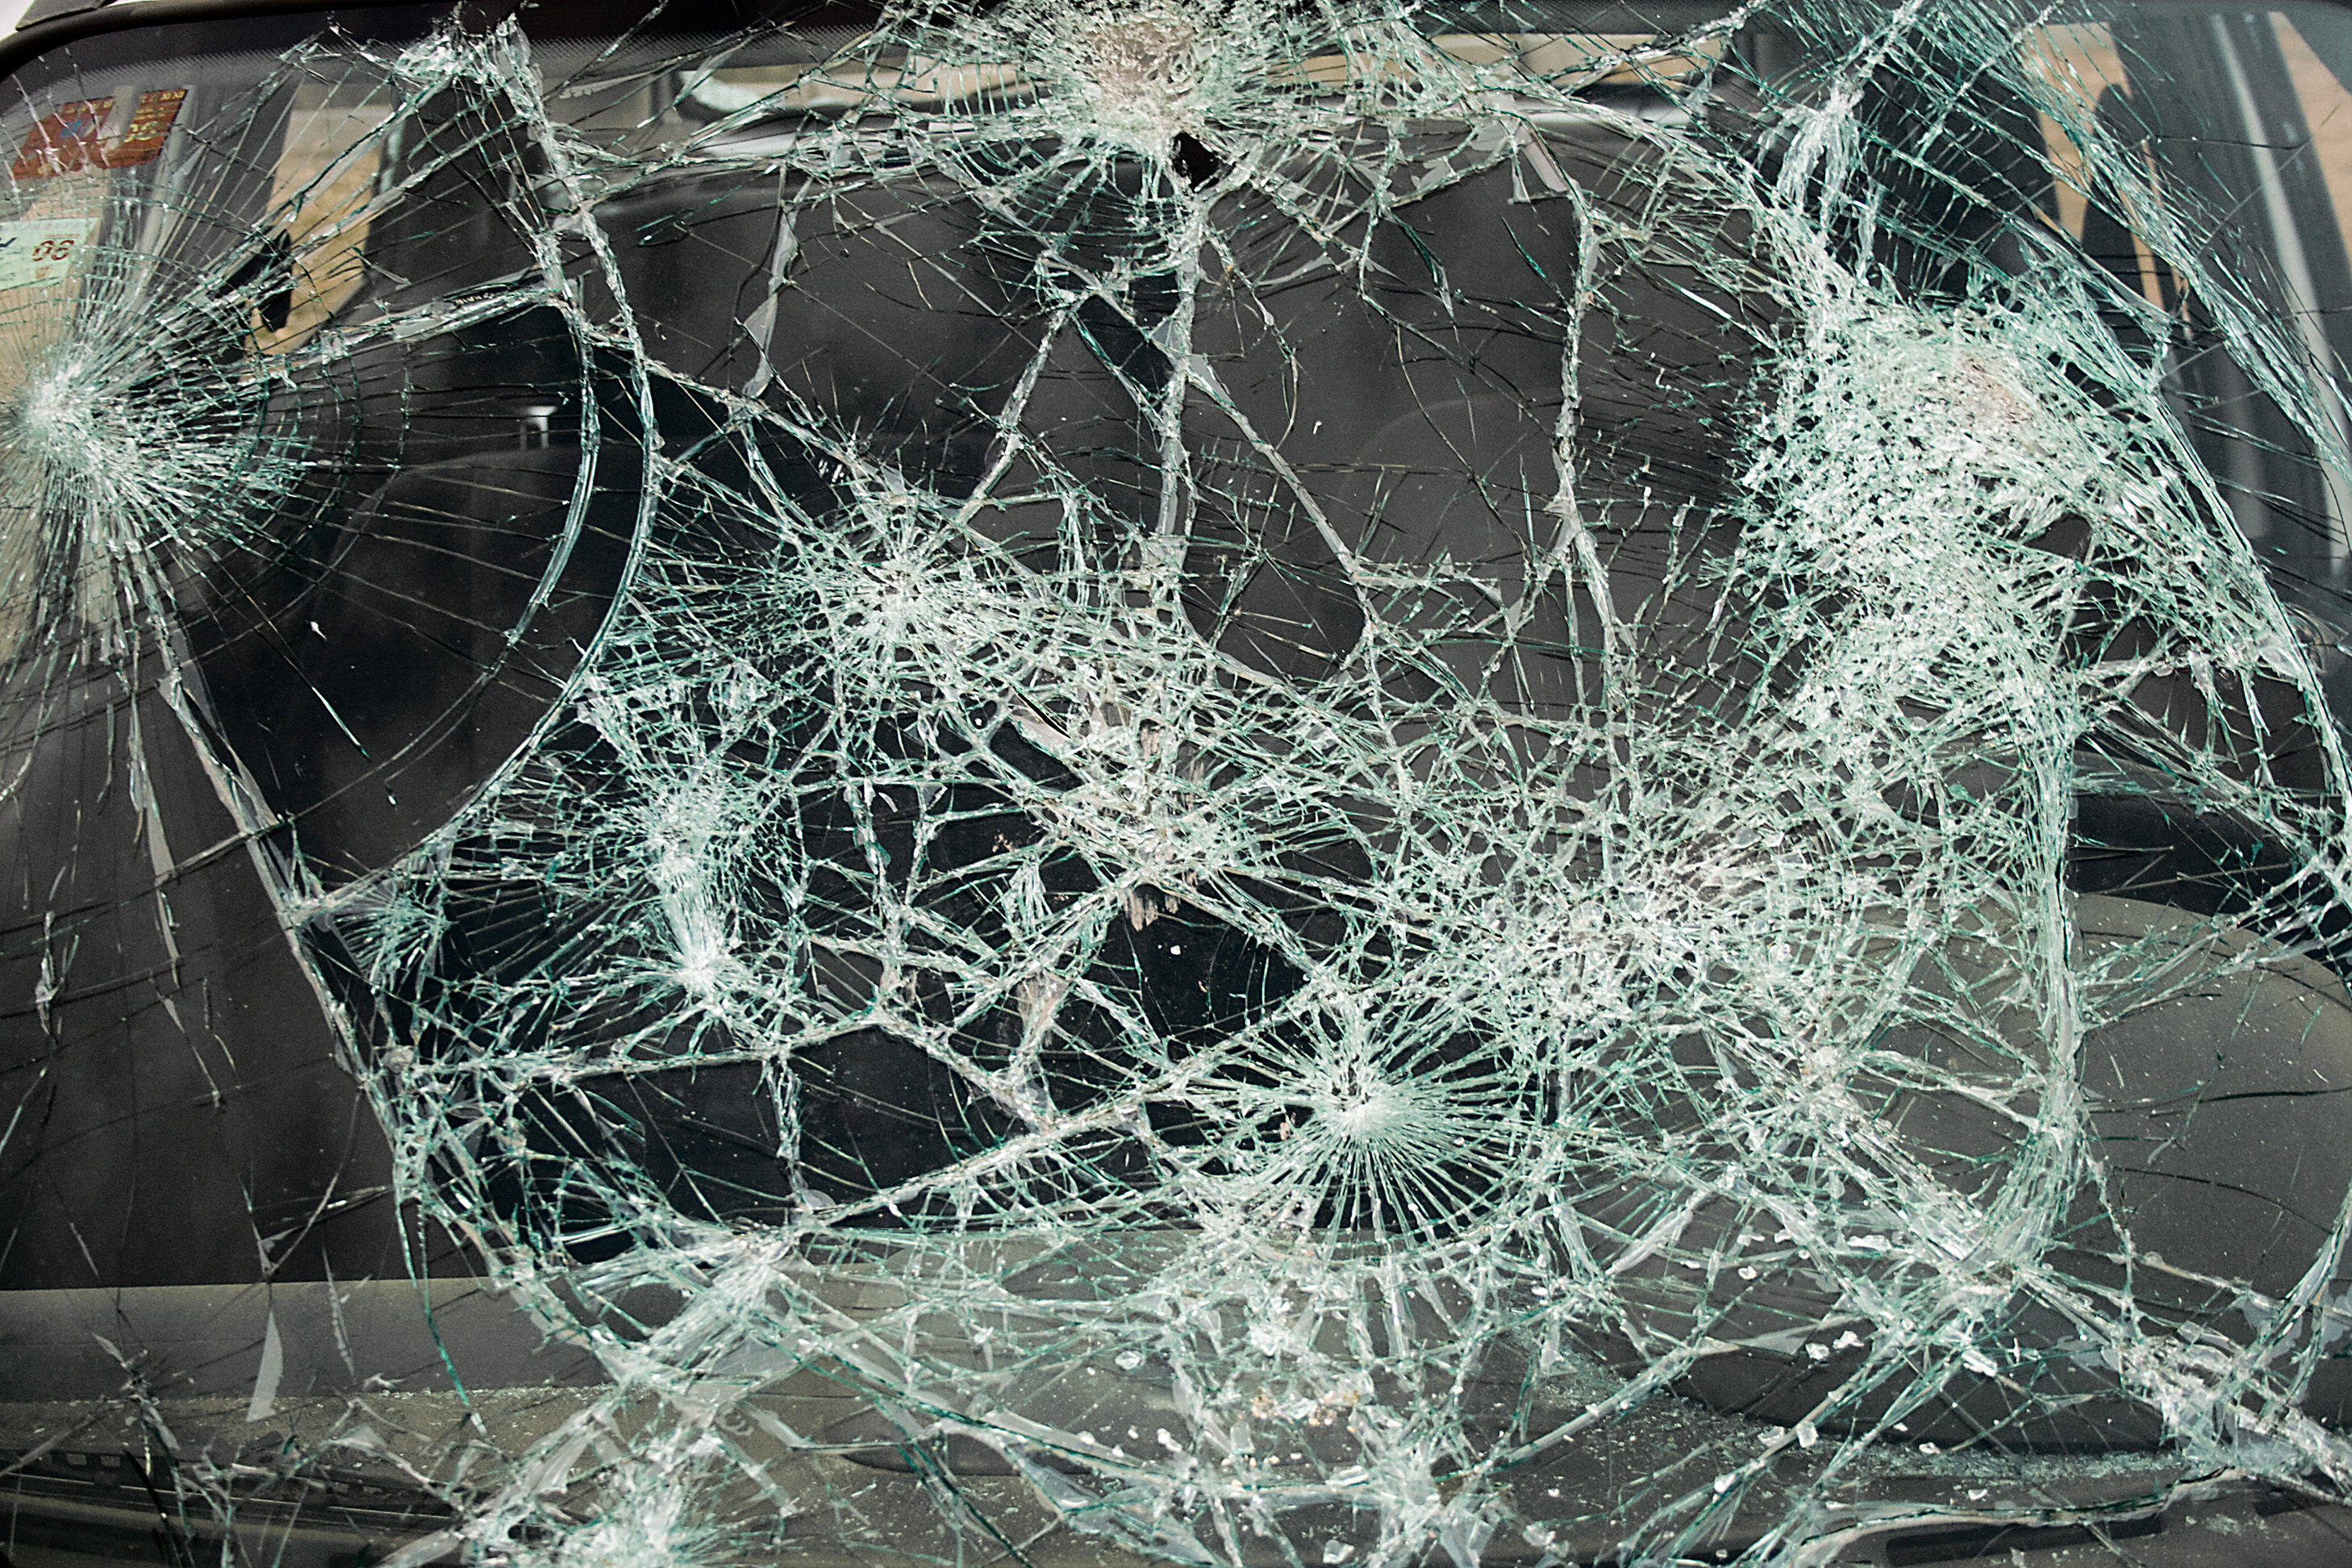 Free Download 45 Realistic Cracked And Broken Screen Wallpapers Technosamrat 2916x1944 For Your Desktop Mobile Tablet Explore 50 Realistic Broken Screen Wallpaper Broken Screen Wallpaper Cracked Screen Wallpaper For